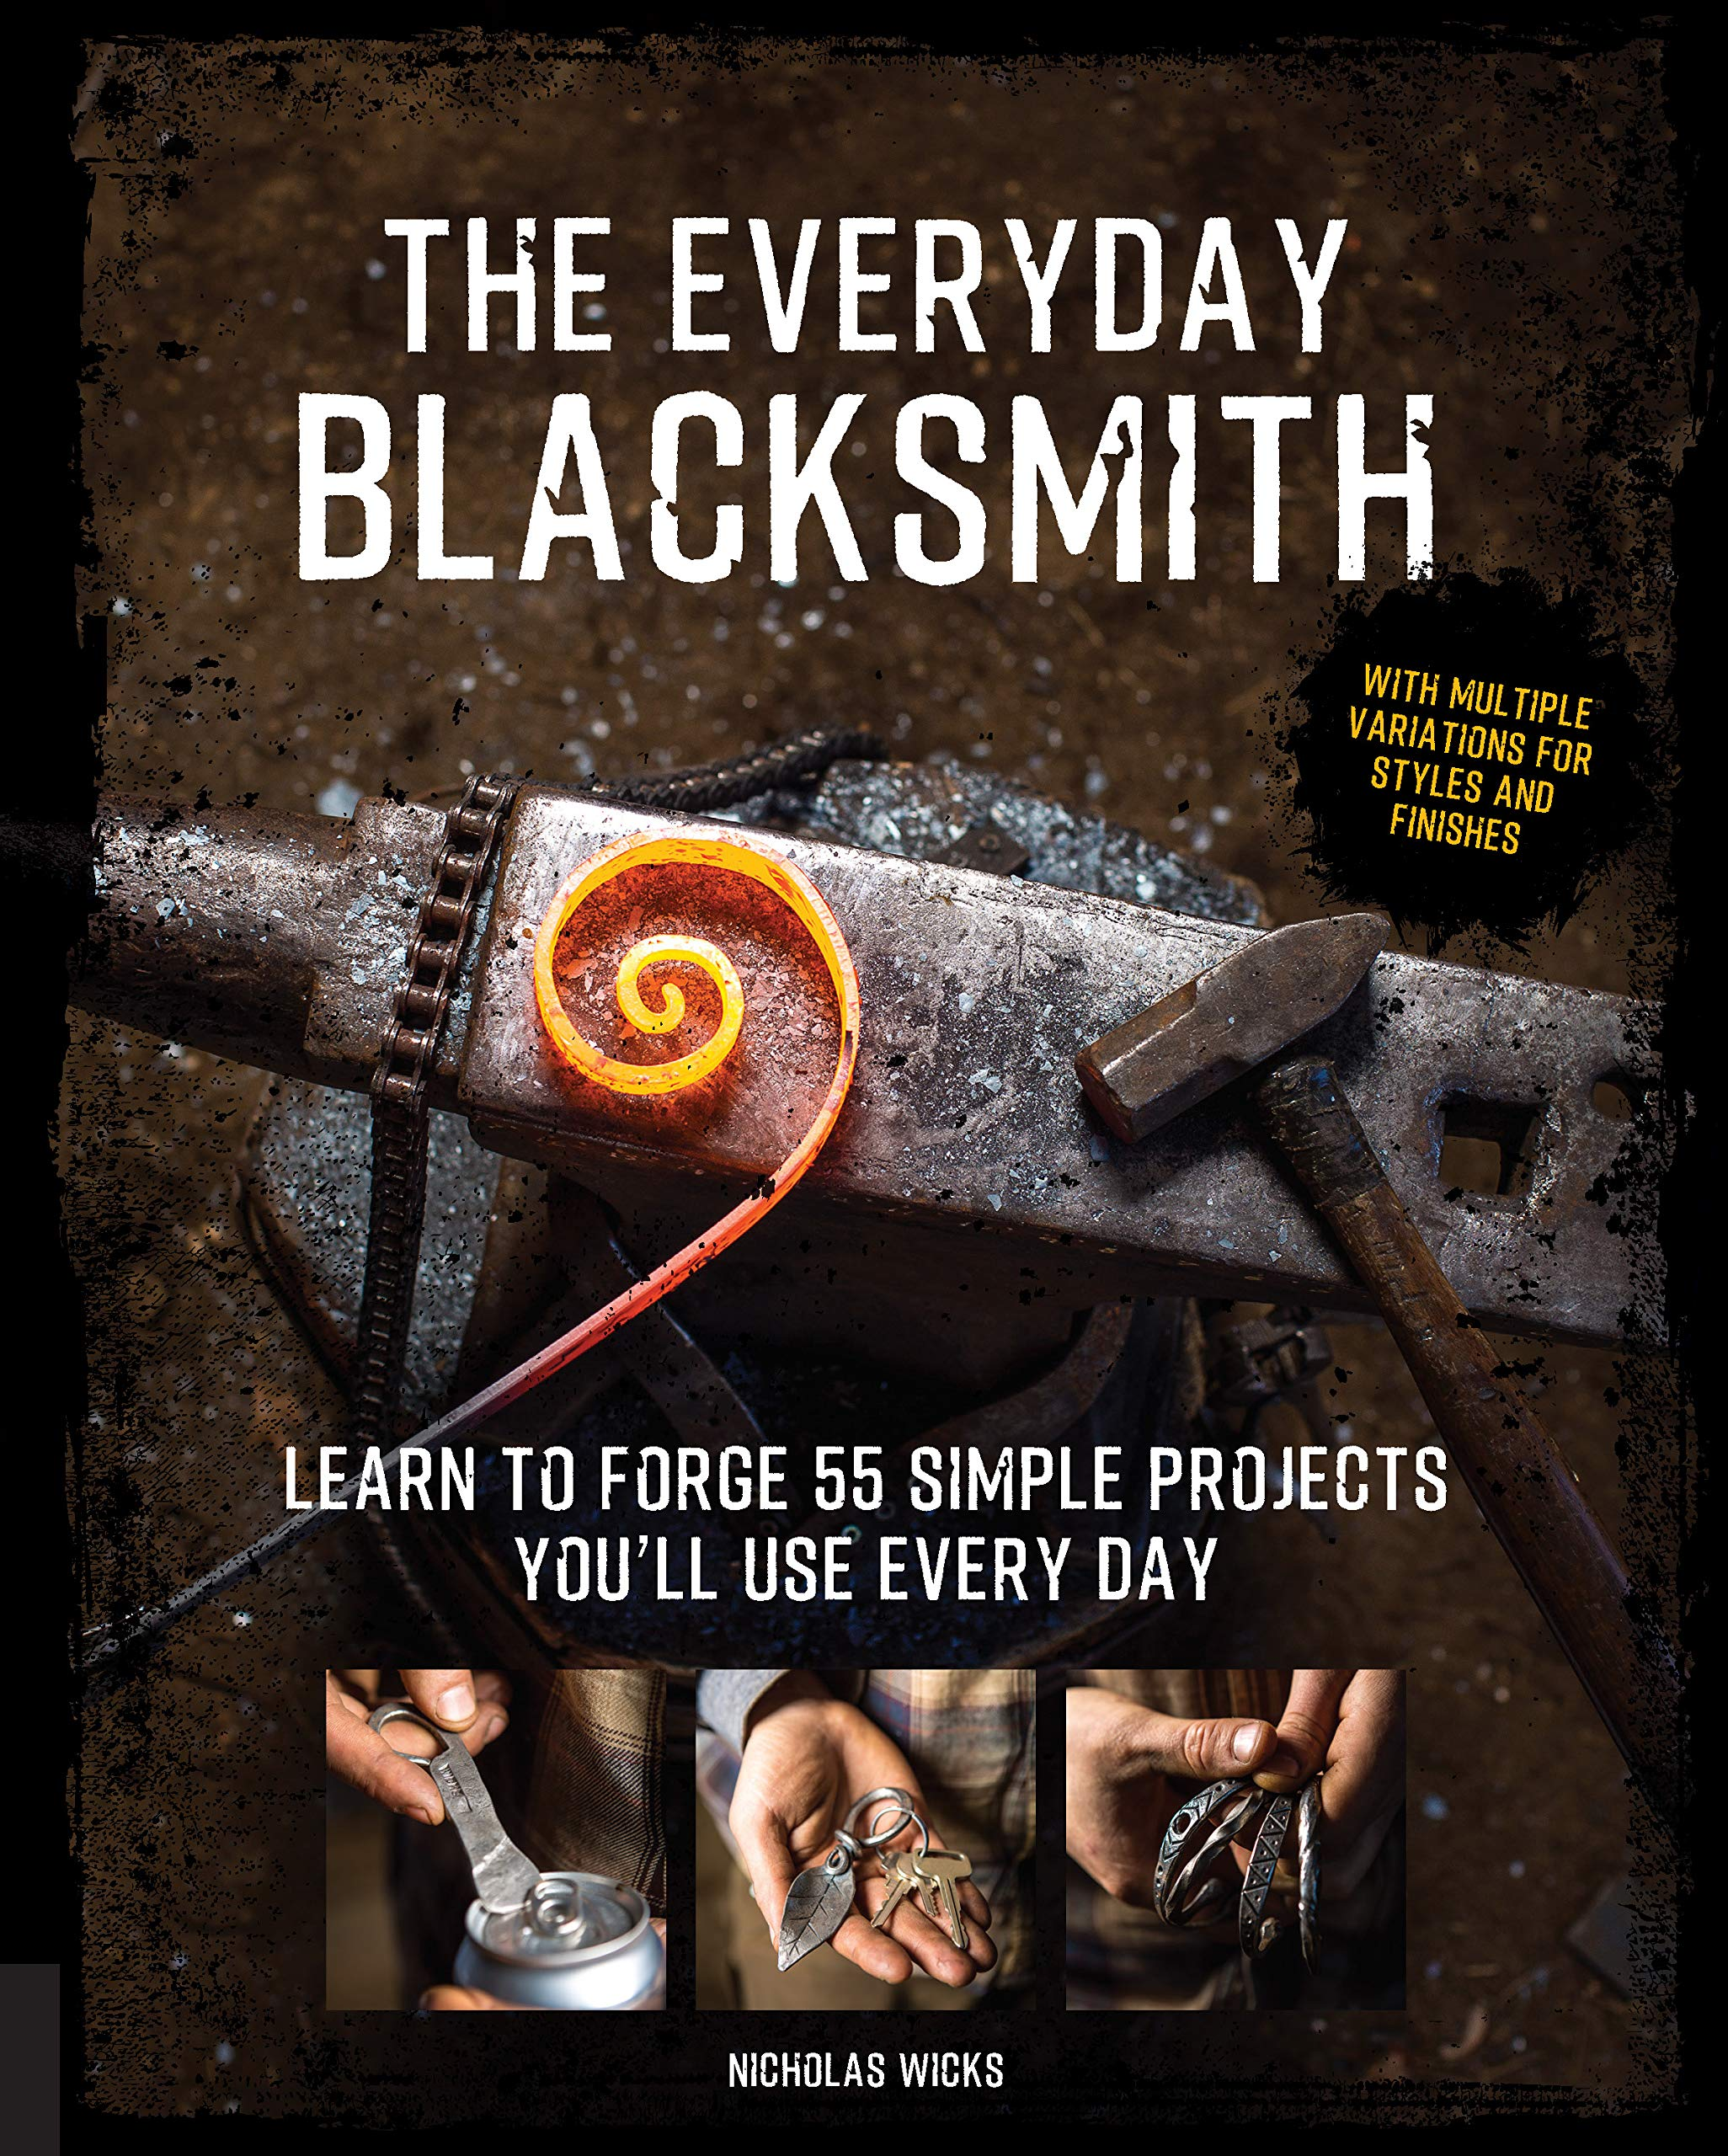 Blacksmith projects pvt ltd contact number